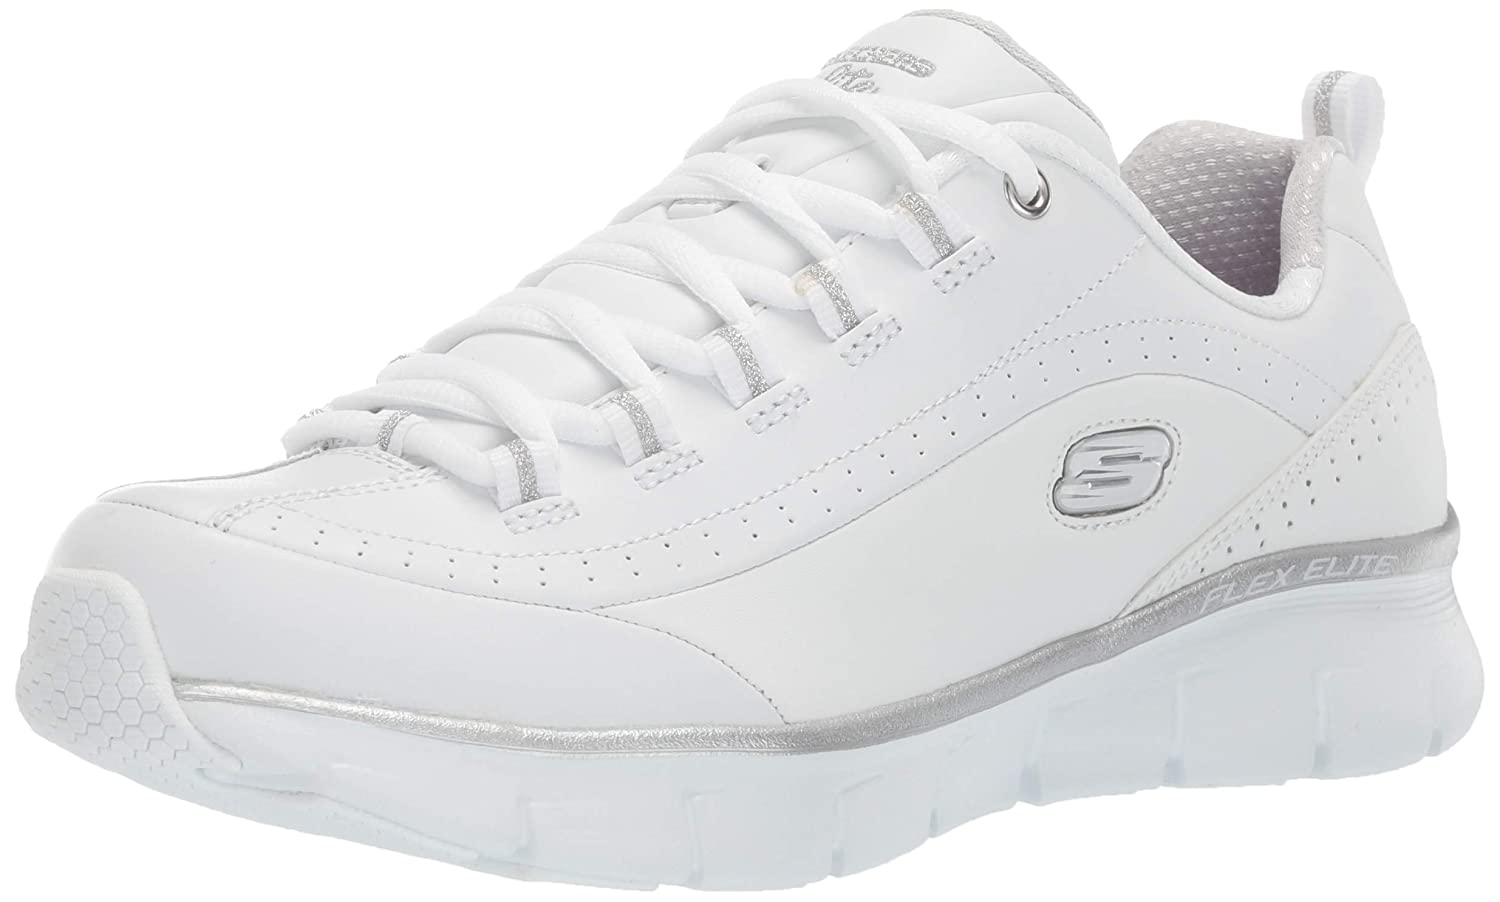 Whitesilver Skechers Women's Synergy 3.0 Sneaker